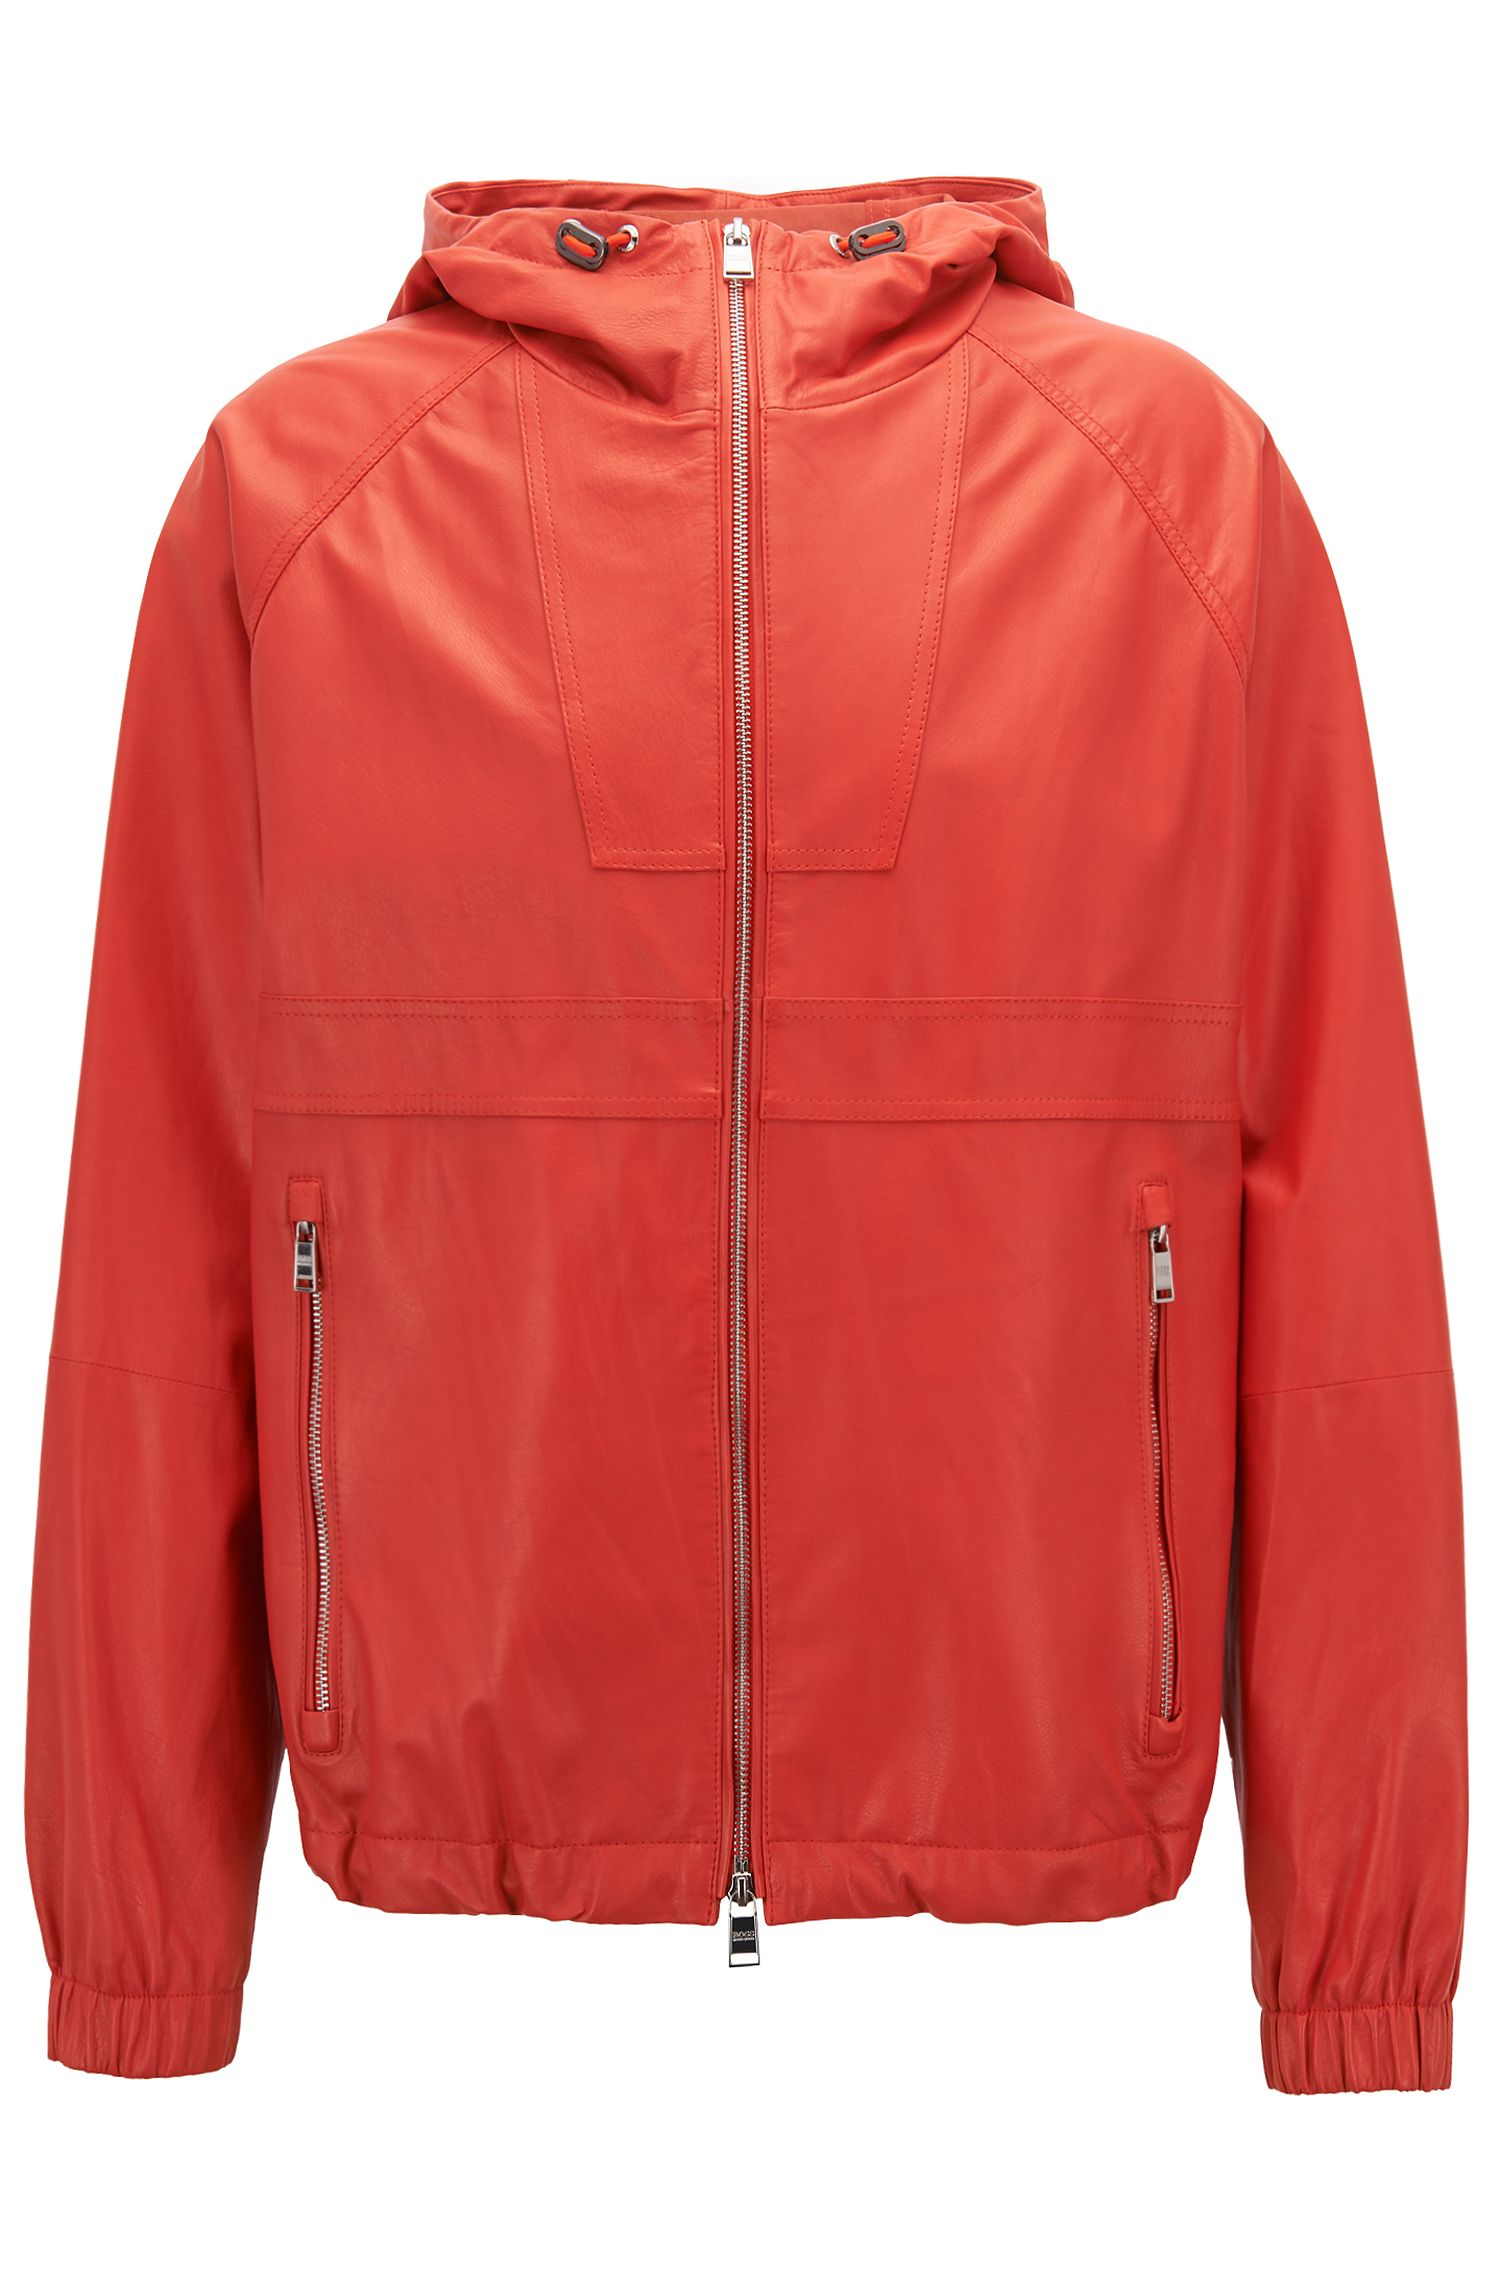 Lightweight nappa leather windbreaker jacket in a relaxed fit